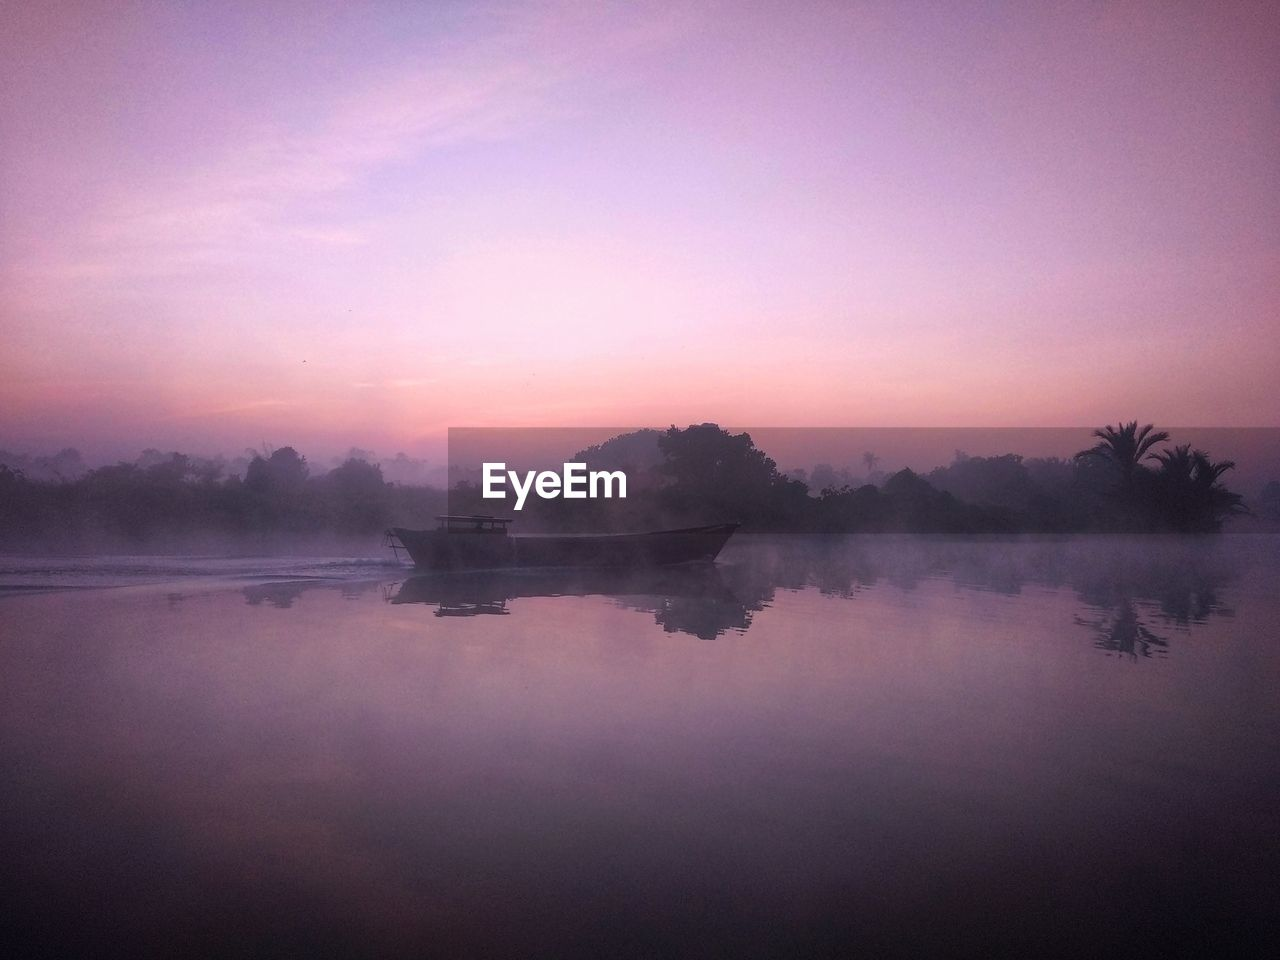 water, sky, scenics - nature, tranquility, sunset, reflection, lake, tranquil scene, beauty in nature, fog, nature, idyllic, no people, waterfront, non-urban scene, nautical vessel, tree, plant, outdoors, purple